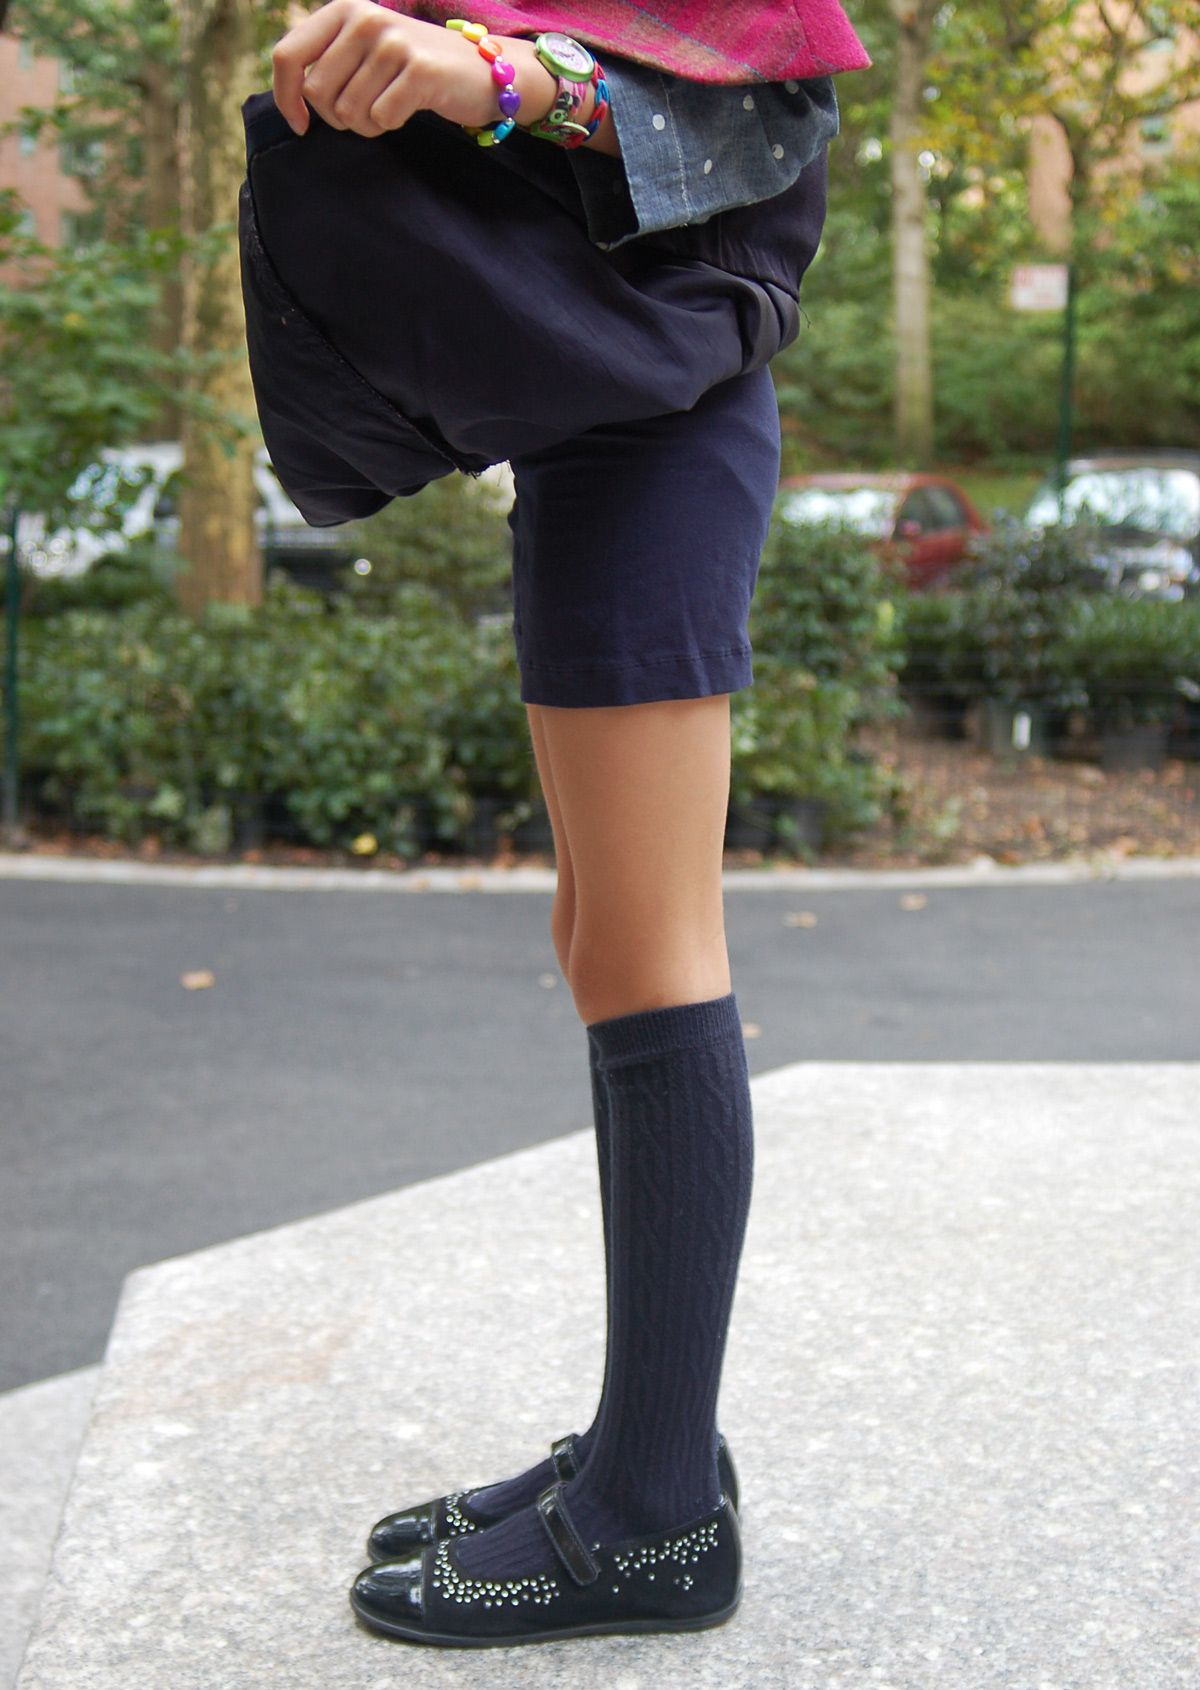 customizing with oliver + s: playtime leggings as playground shorts